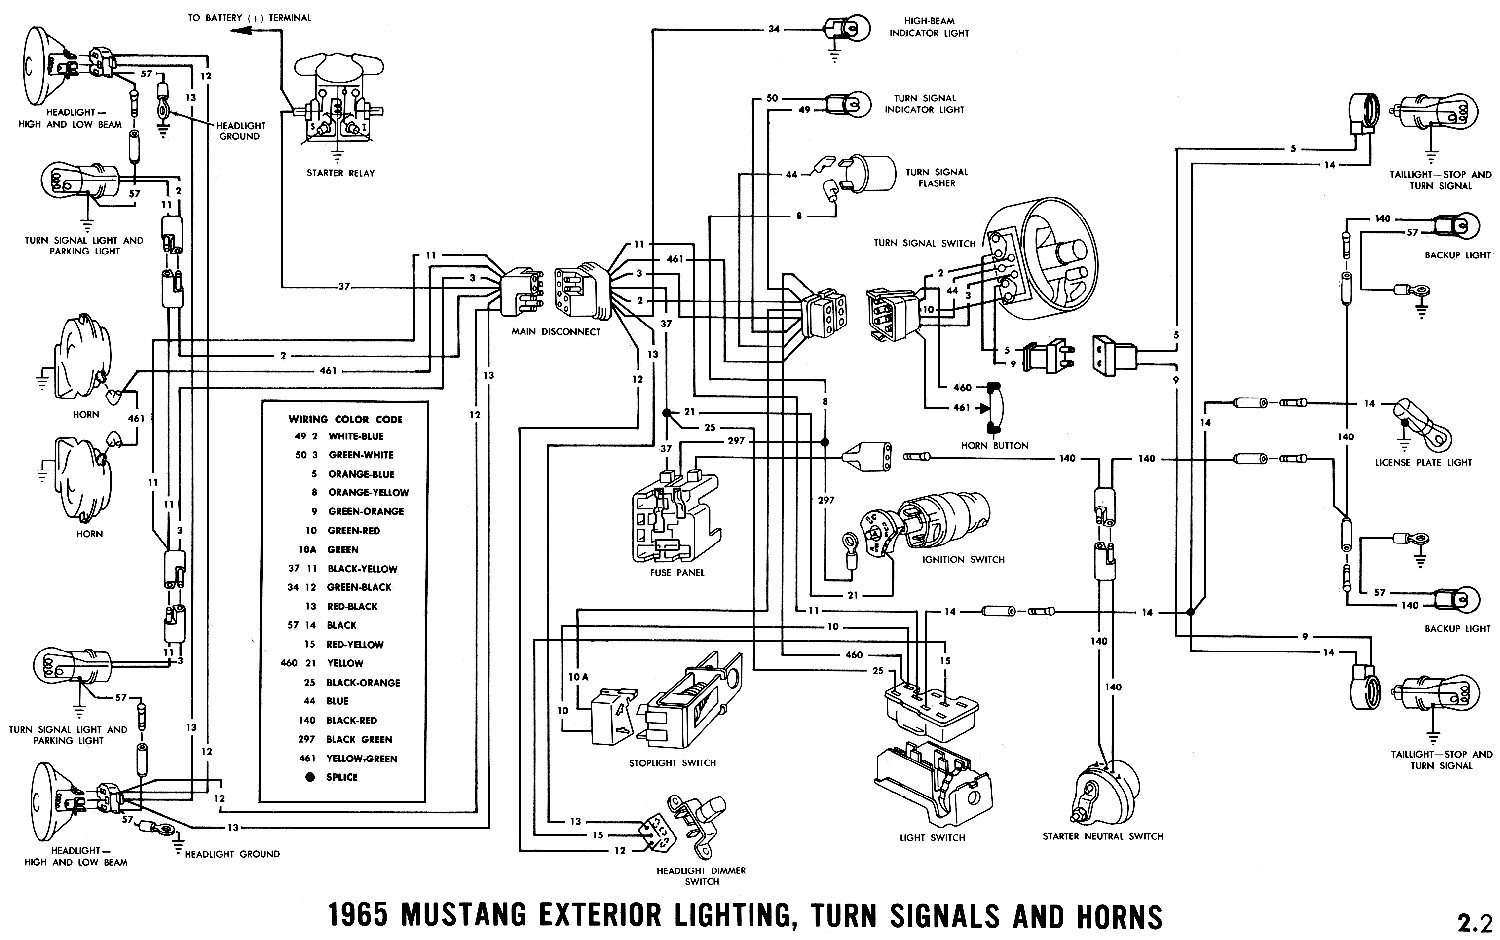 1964 Ford F100 Tail Light Wiring Diagram Free Picture Worksheet 2006 F150 Brake Schematic 65 Mustang Horn Online Schematics Rh Delvato Co Fader Ac